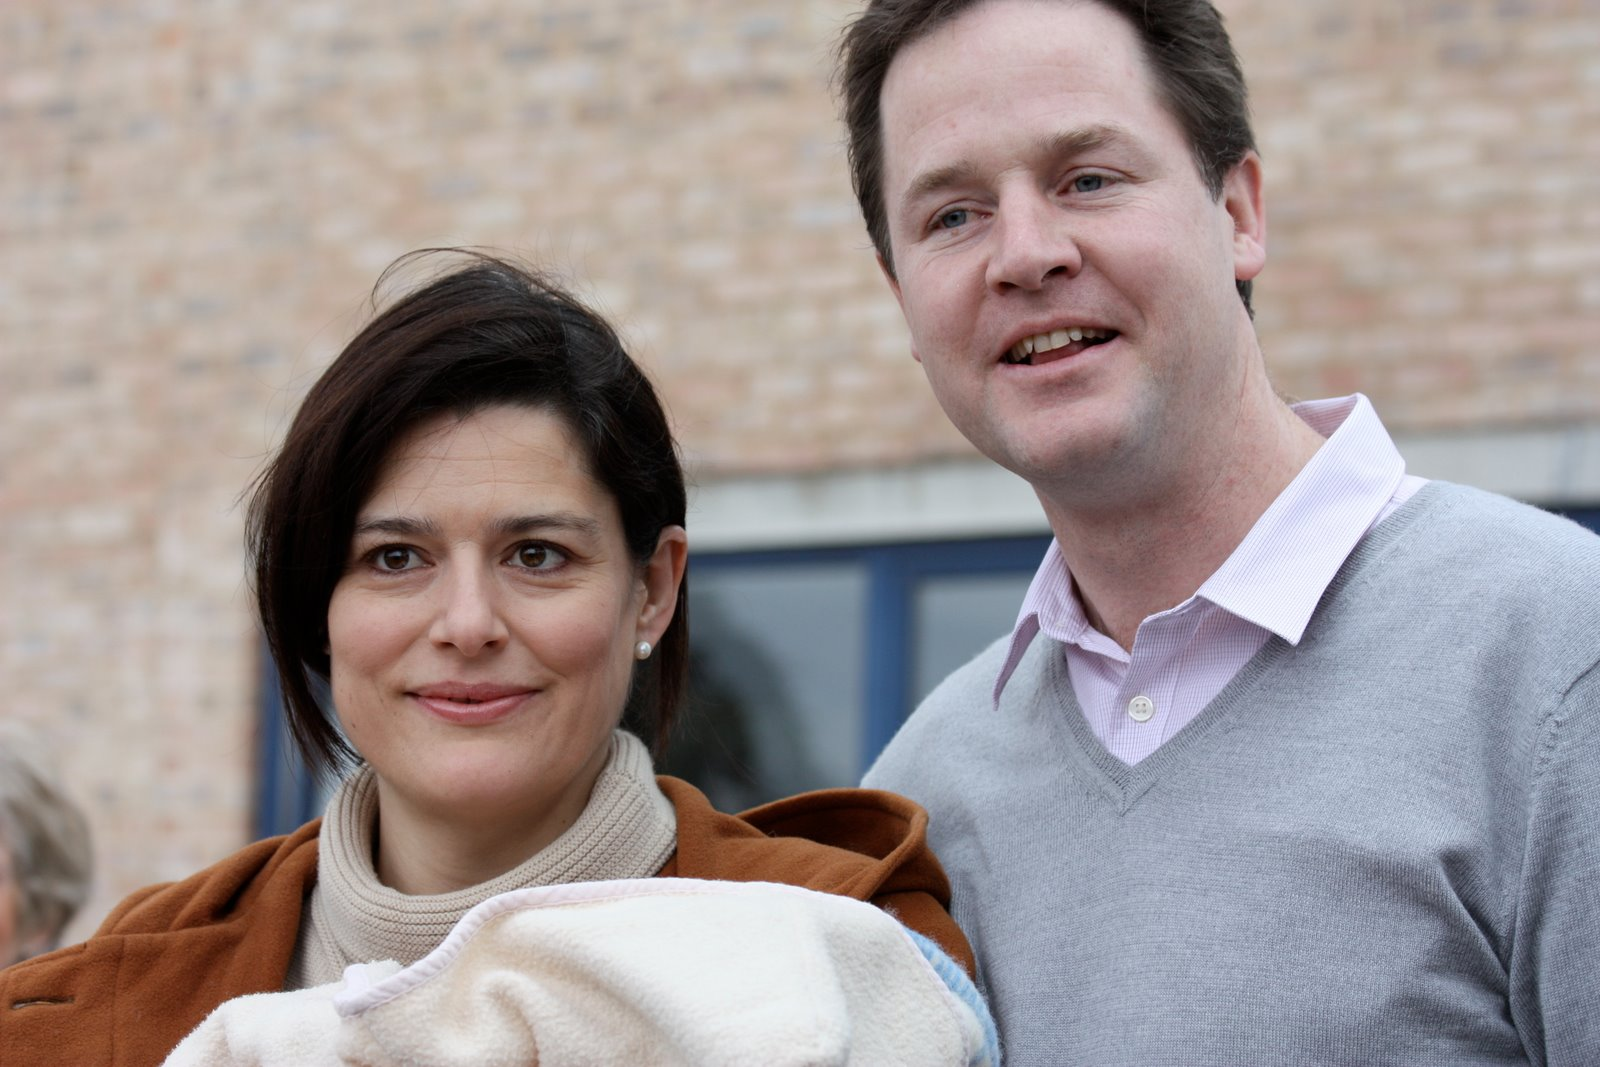 Why Miriam Gonzalez Durantez, Nick Clegg's Wife, Is Accusing British Airways Of Sexism